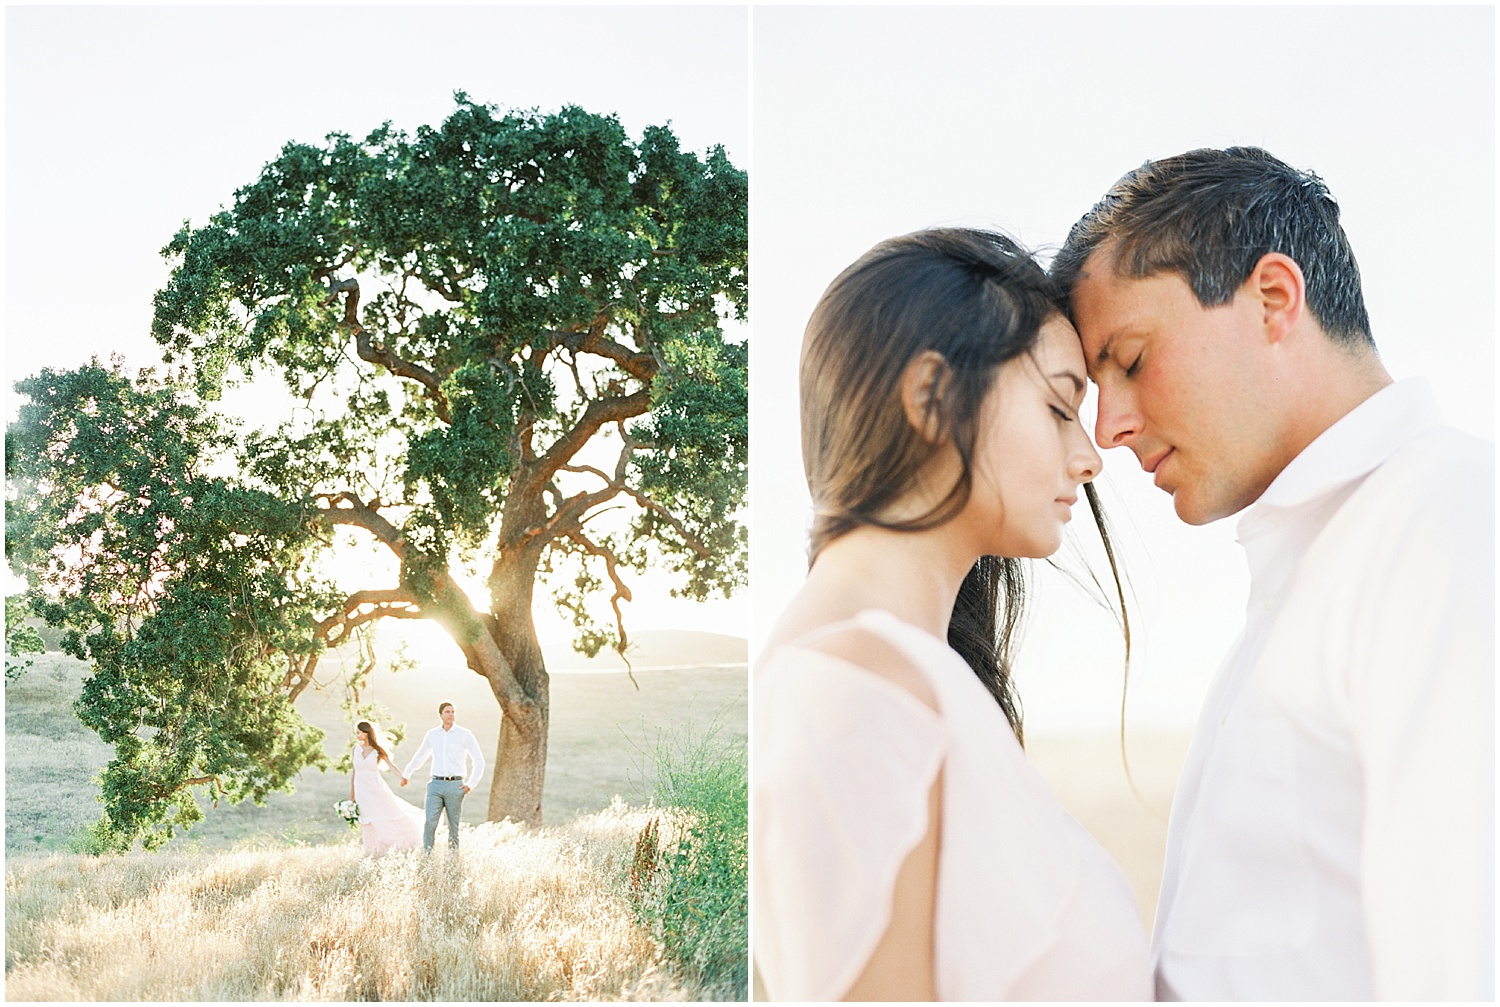 Santa Barbara Engagement | Kestrel Park Wedding | San Diego Wedding Photographer | Palm Springs Wedding Photographer | Joshua Tree Elopment_0006.jpg